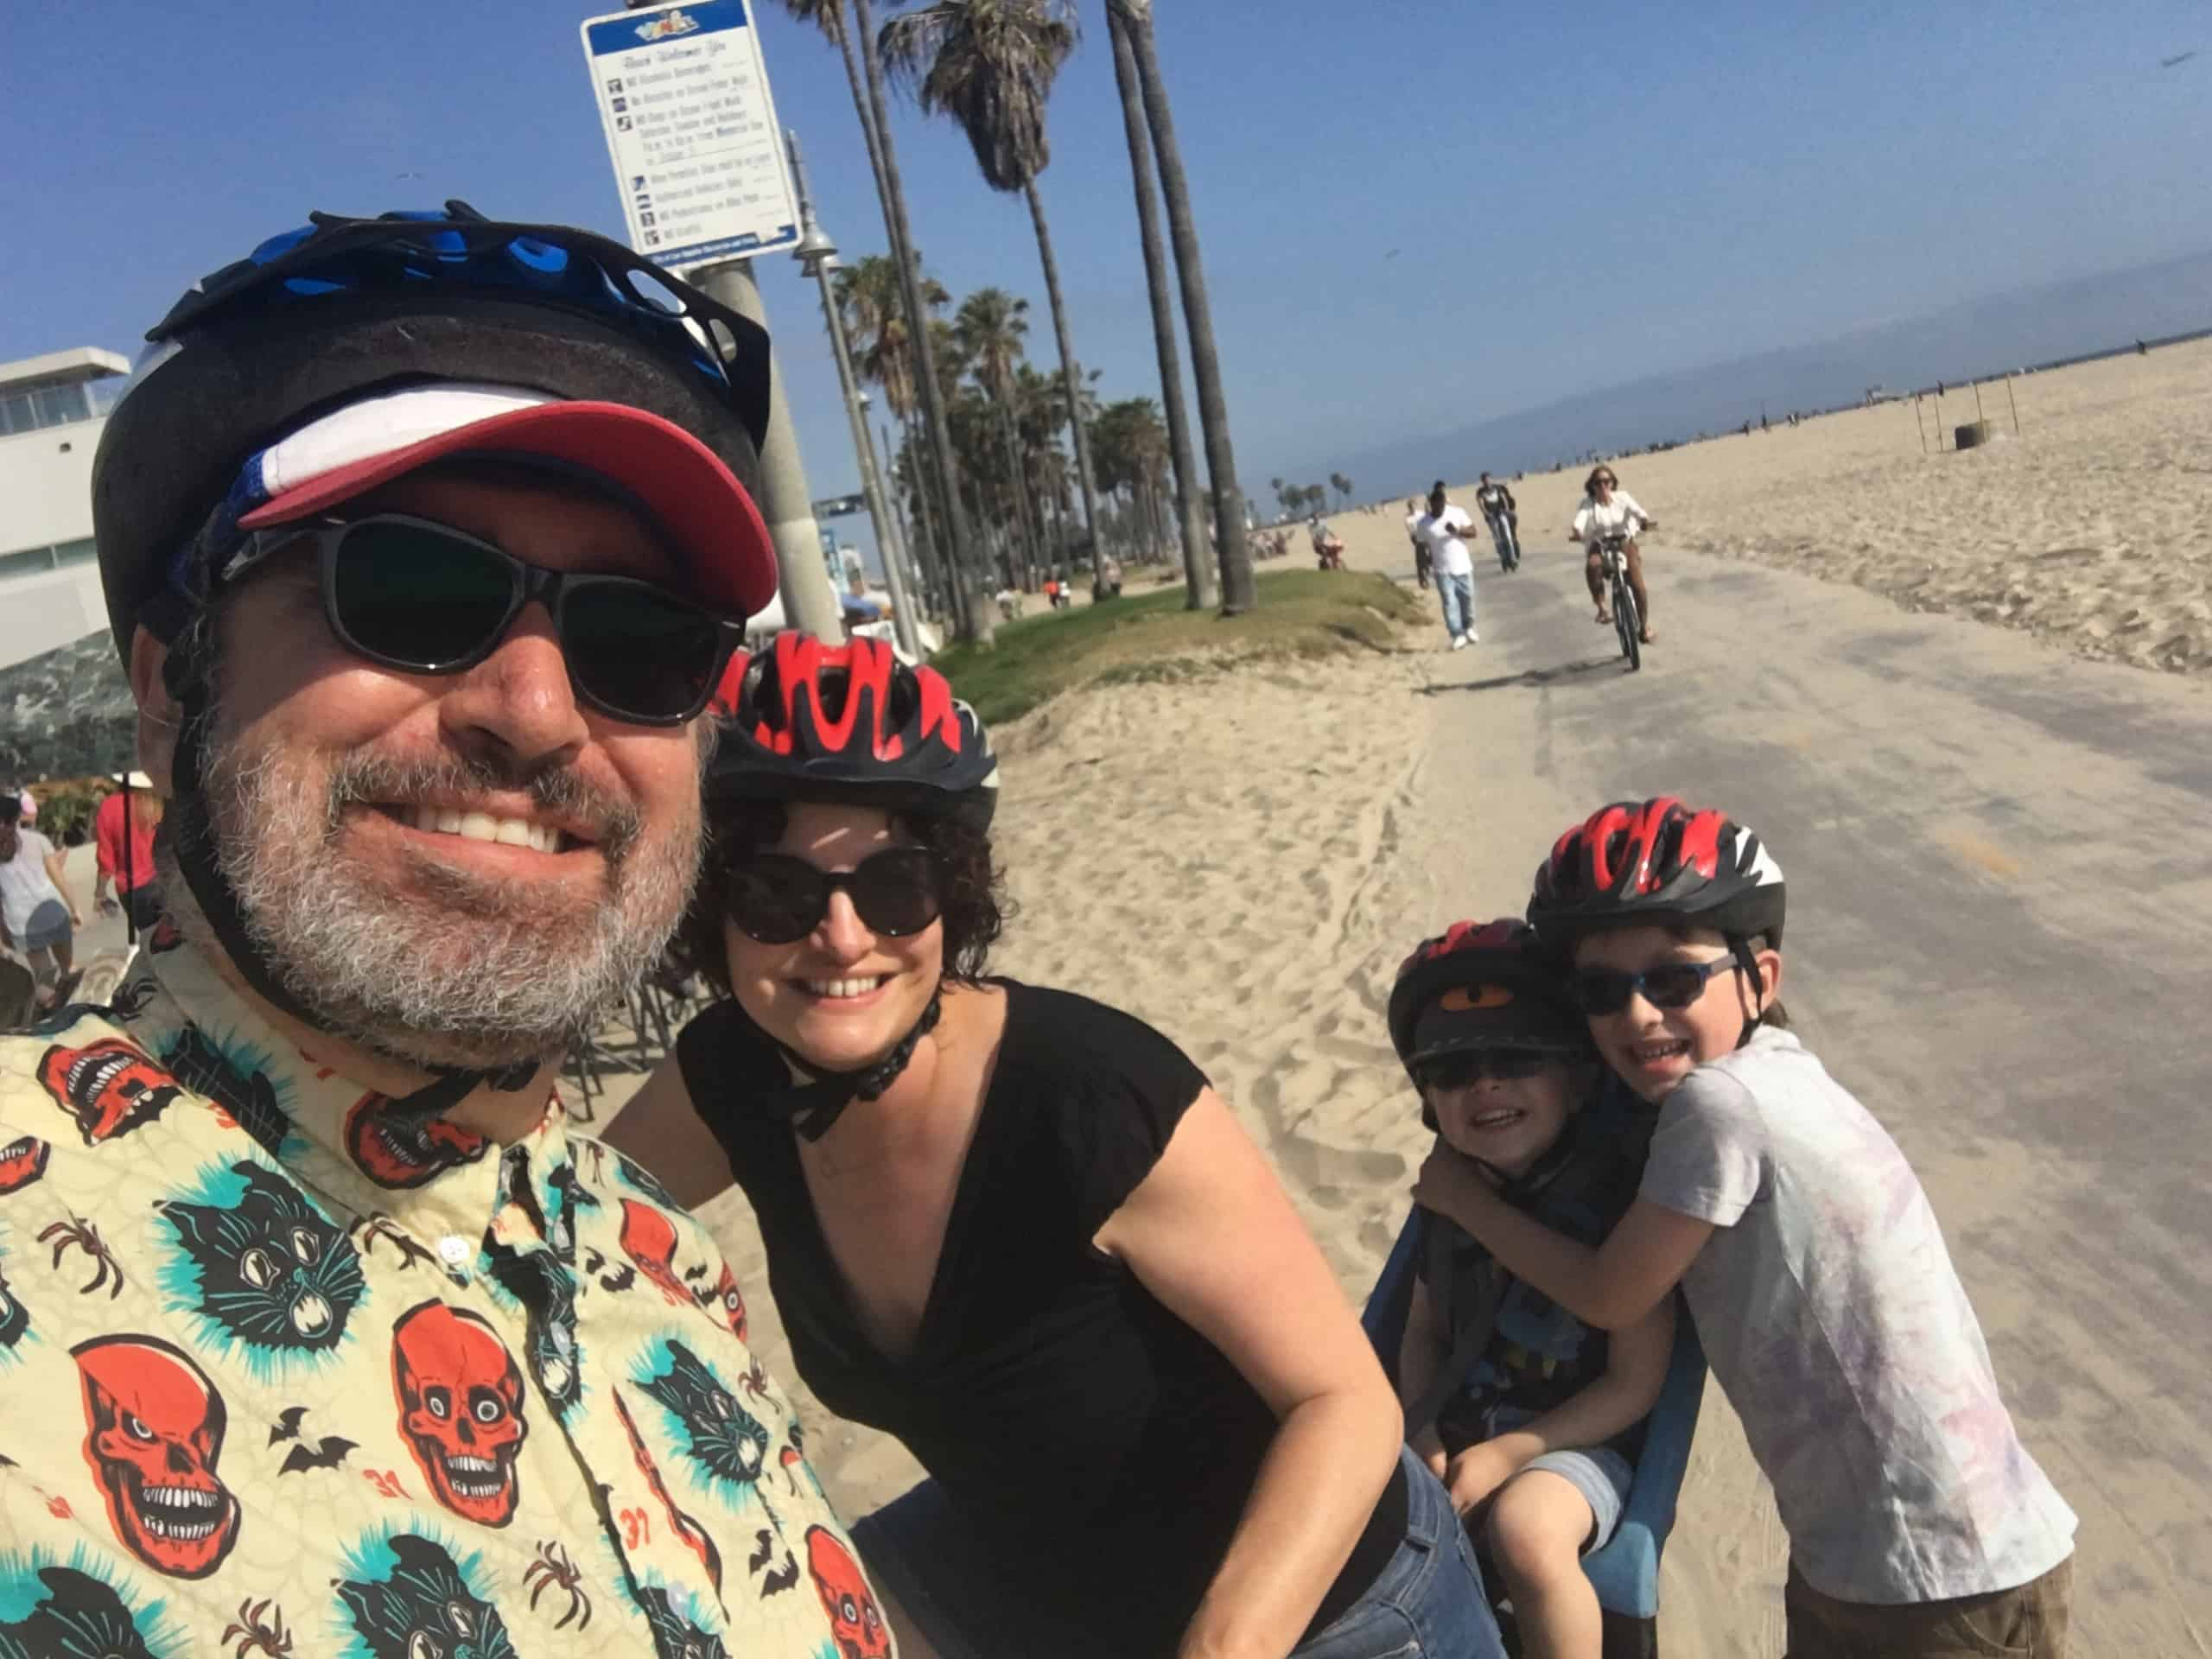 A man, woman, and two hugging boys with glasses bike on a beach trail